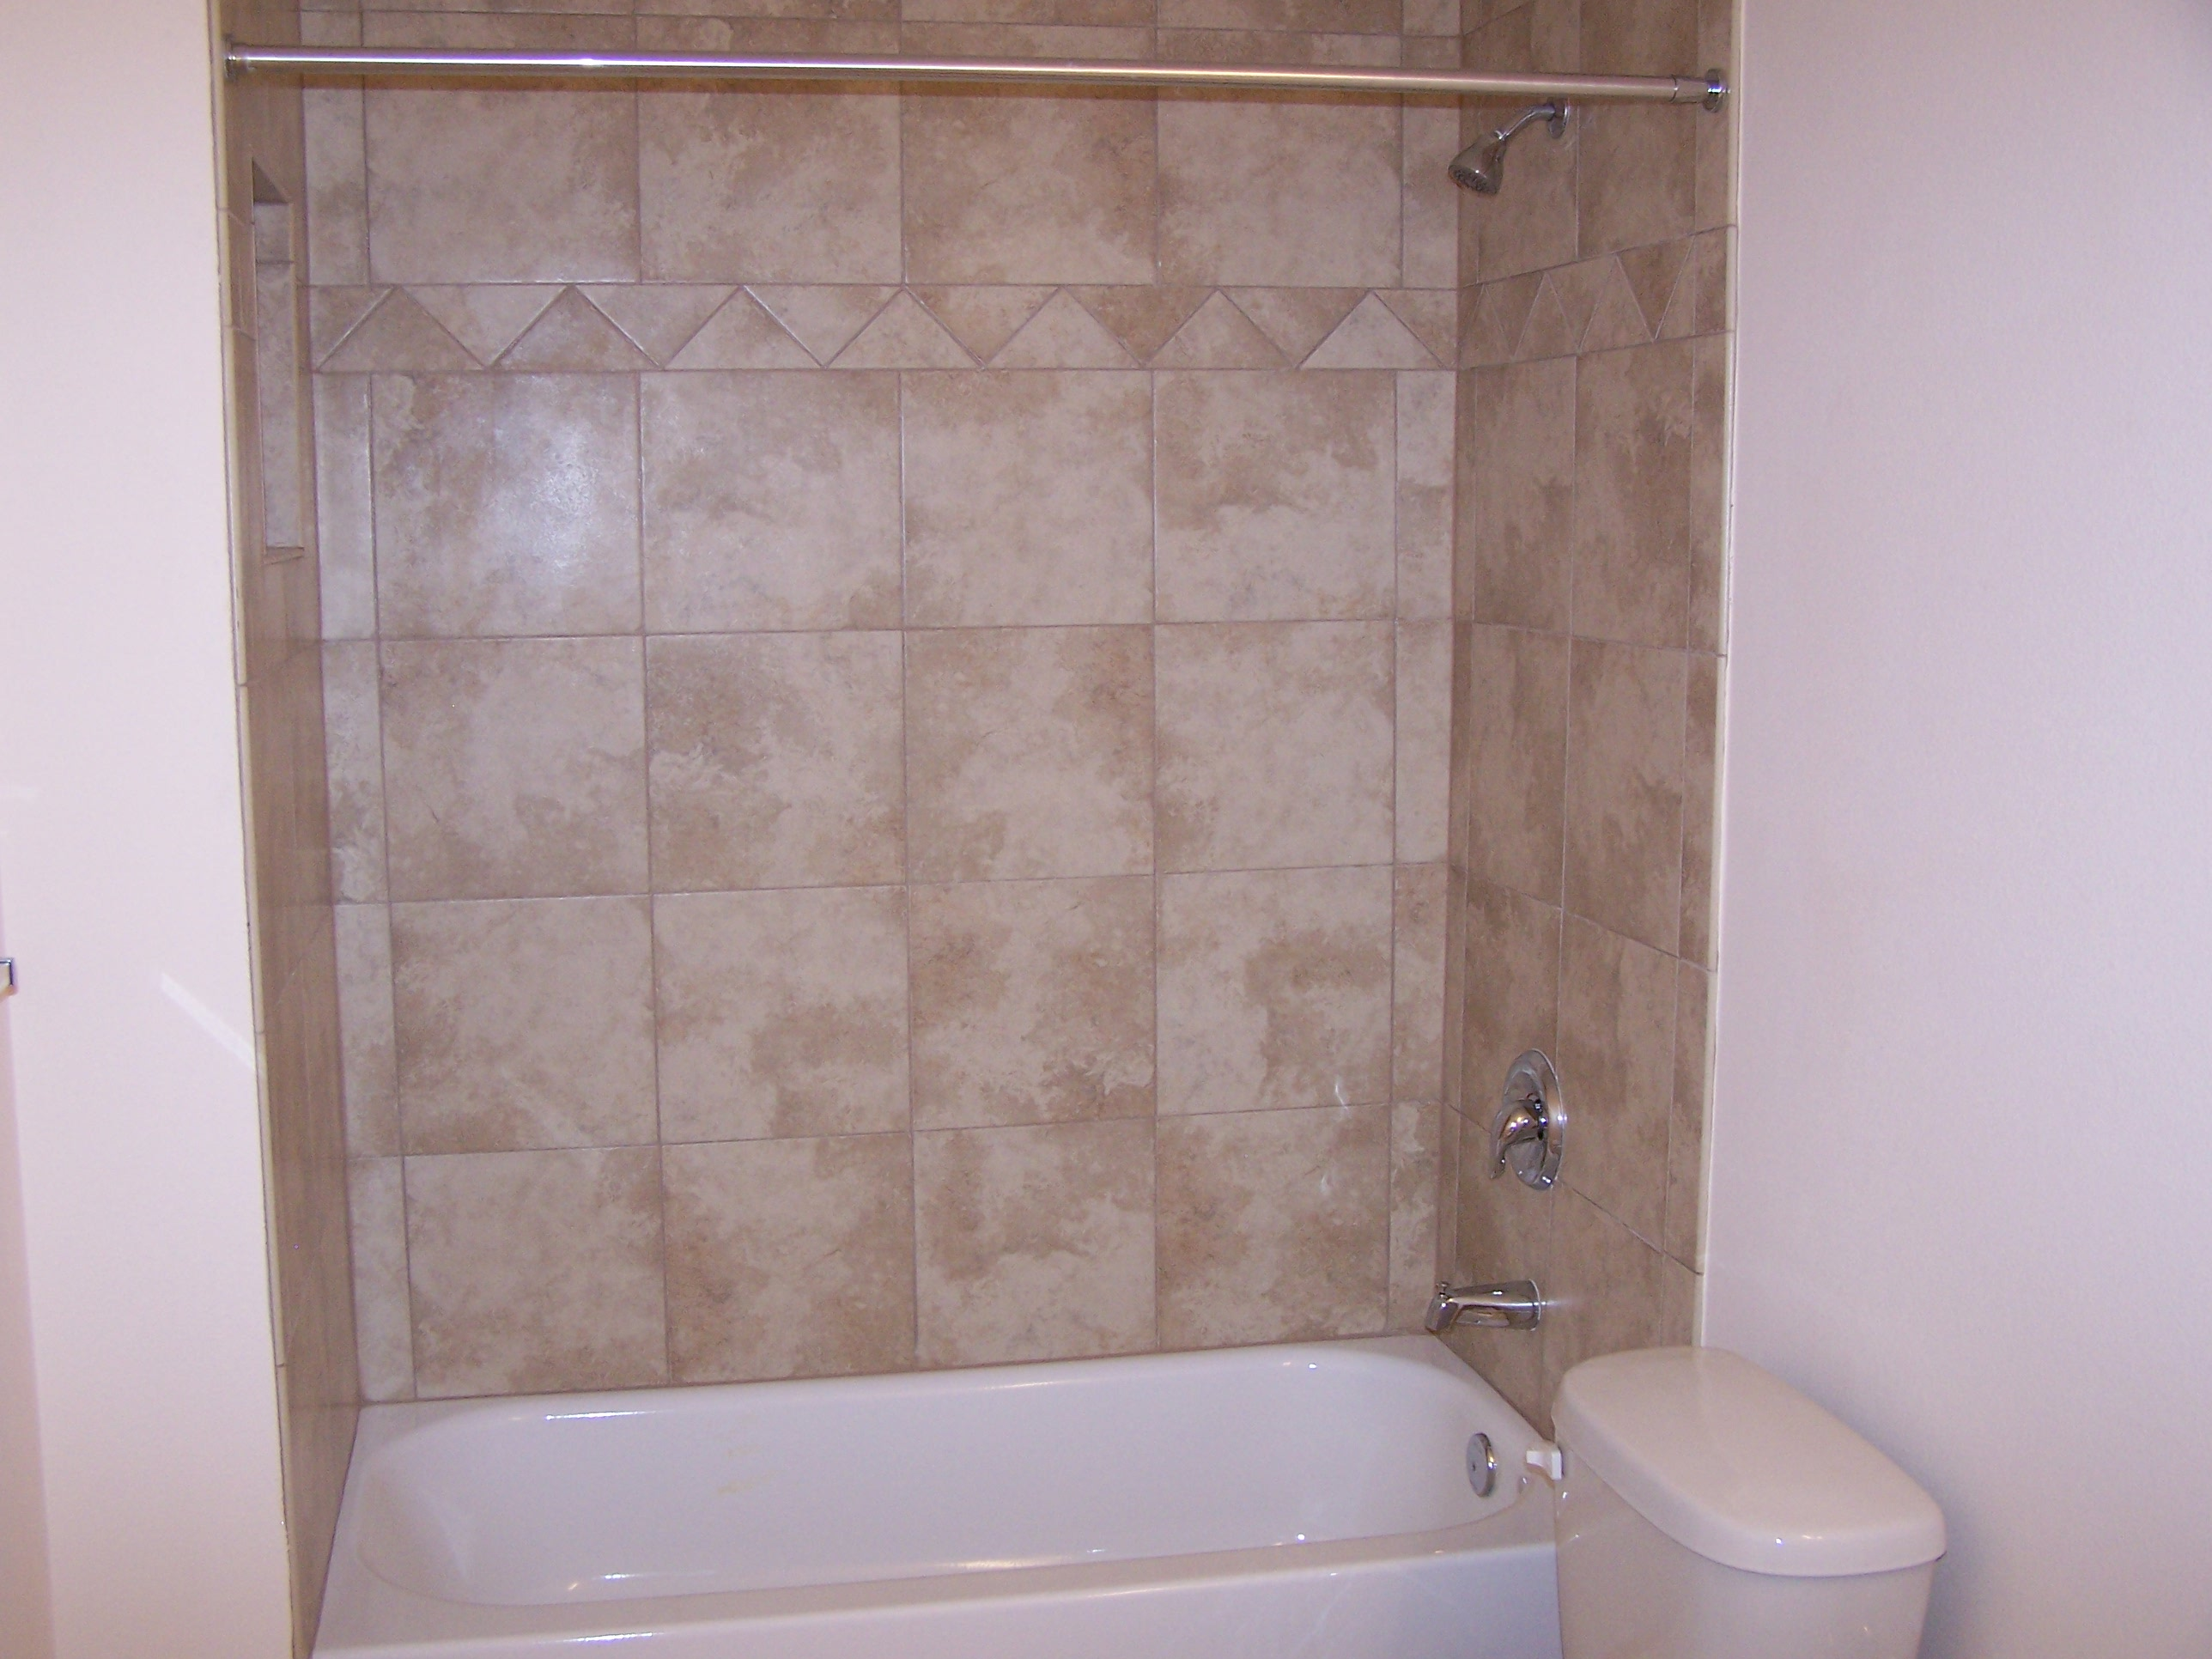 Decorative Tiles For Bathroom